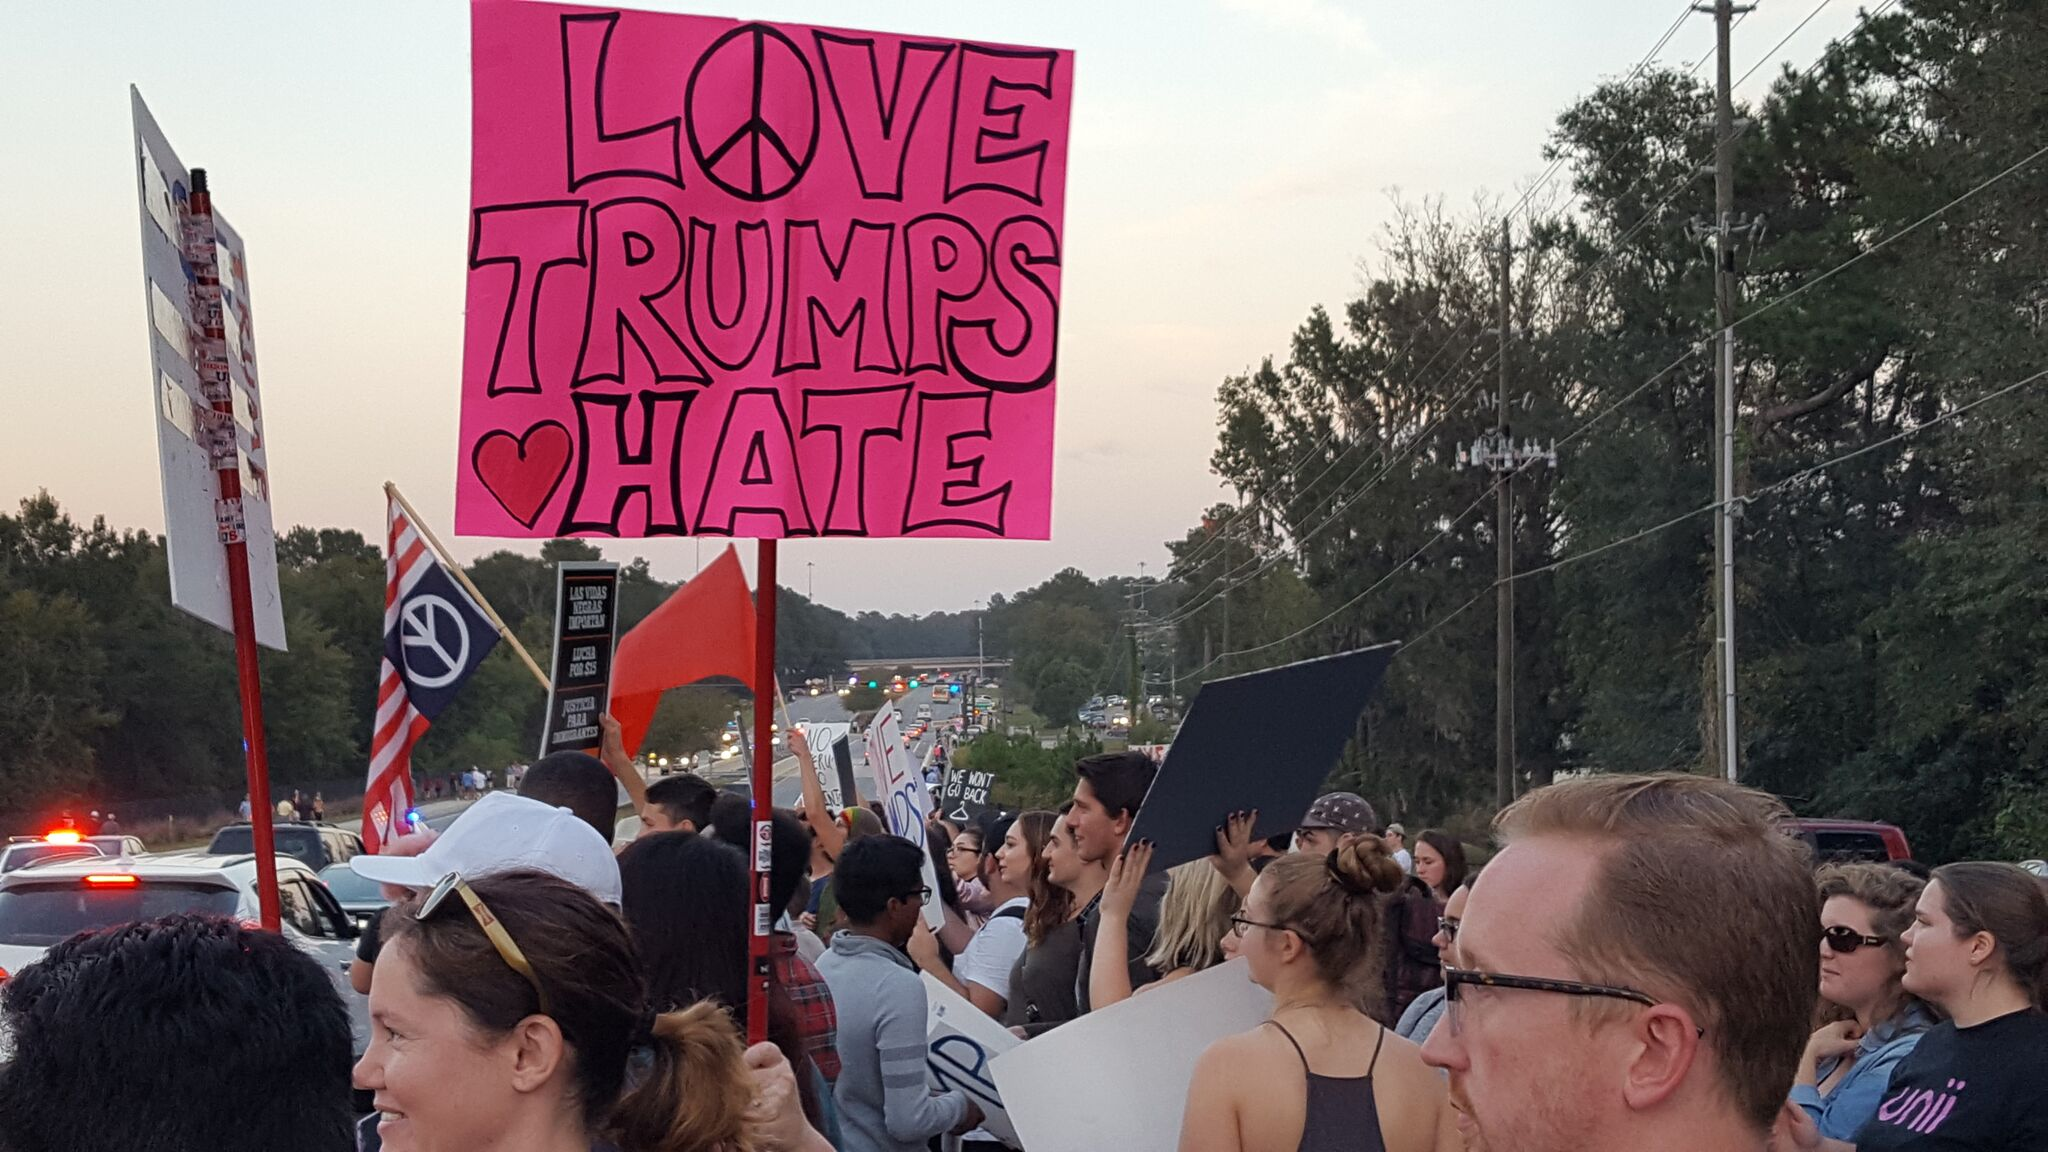 A few hundred protesters picket at the Tallahassee Trump Rally.